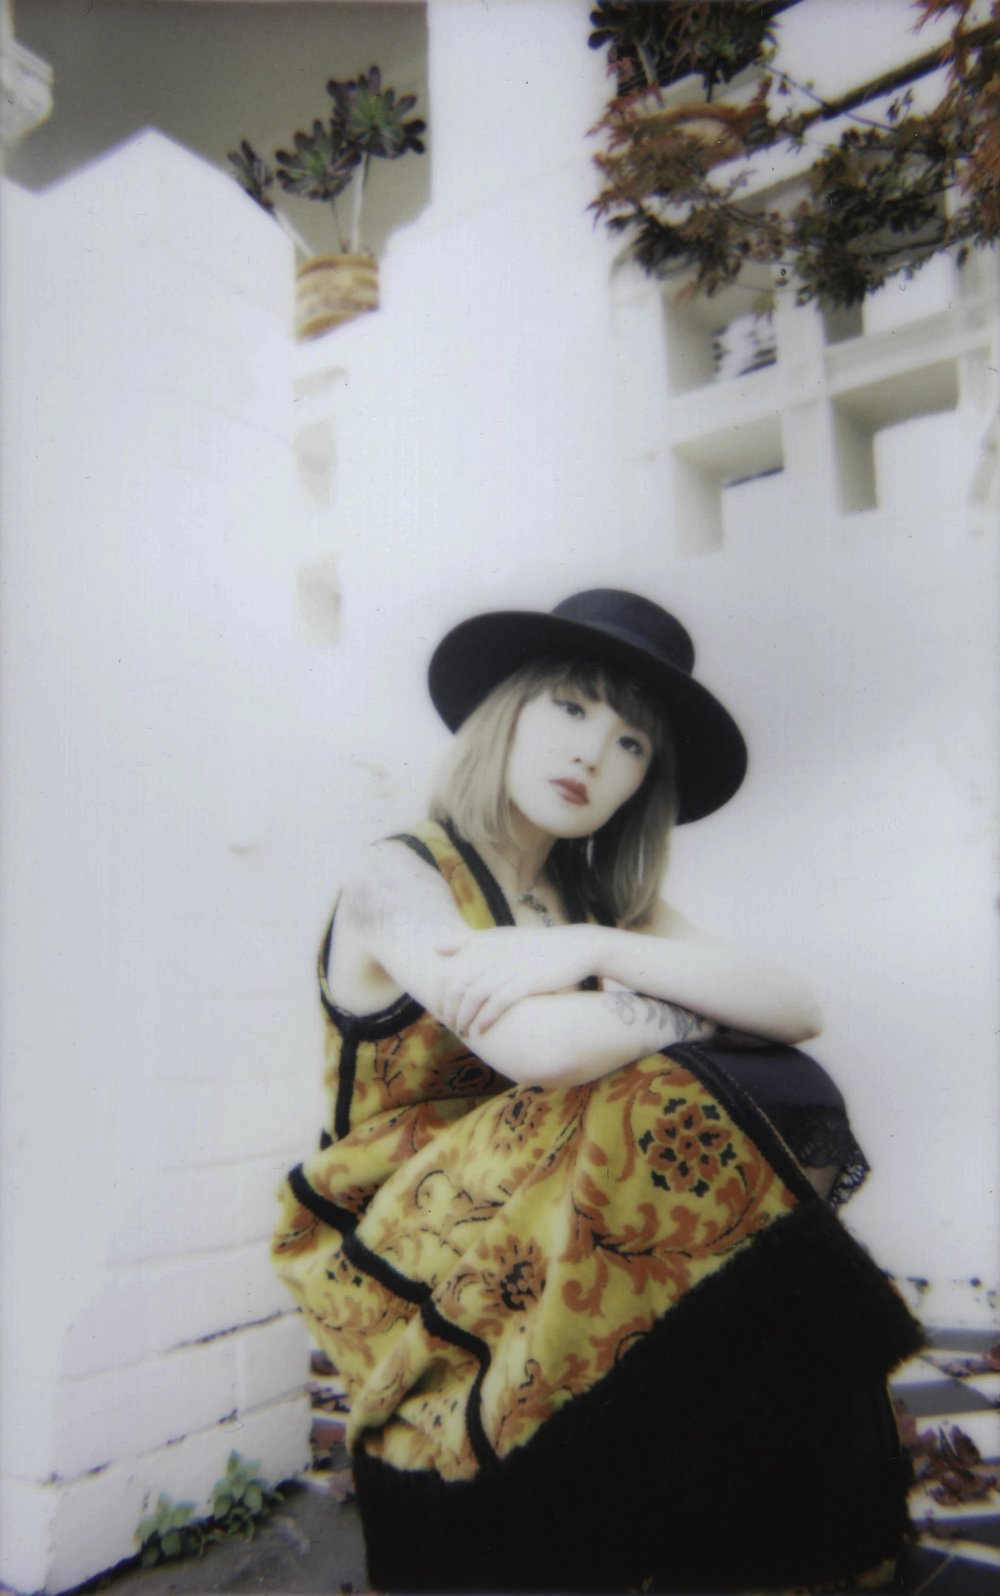 Polaroid - Look 4 - Autumn Leaves 2.jpg